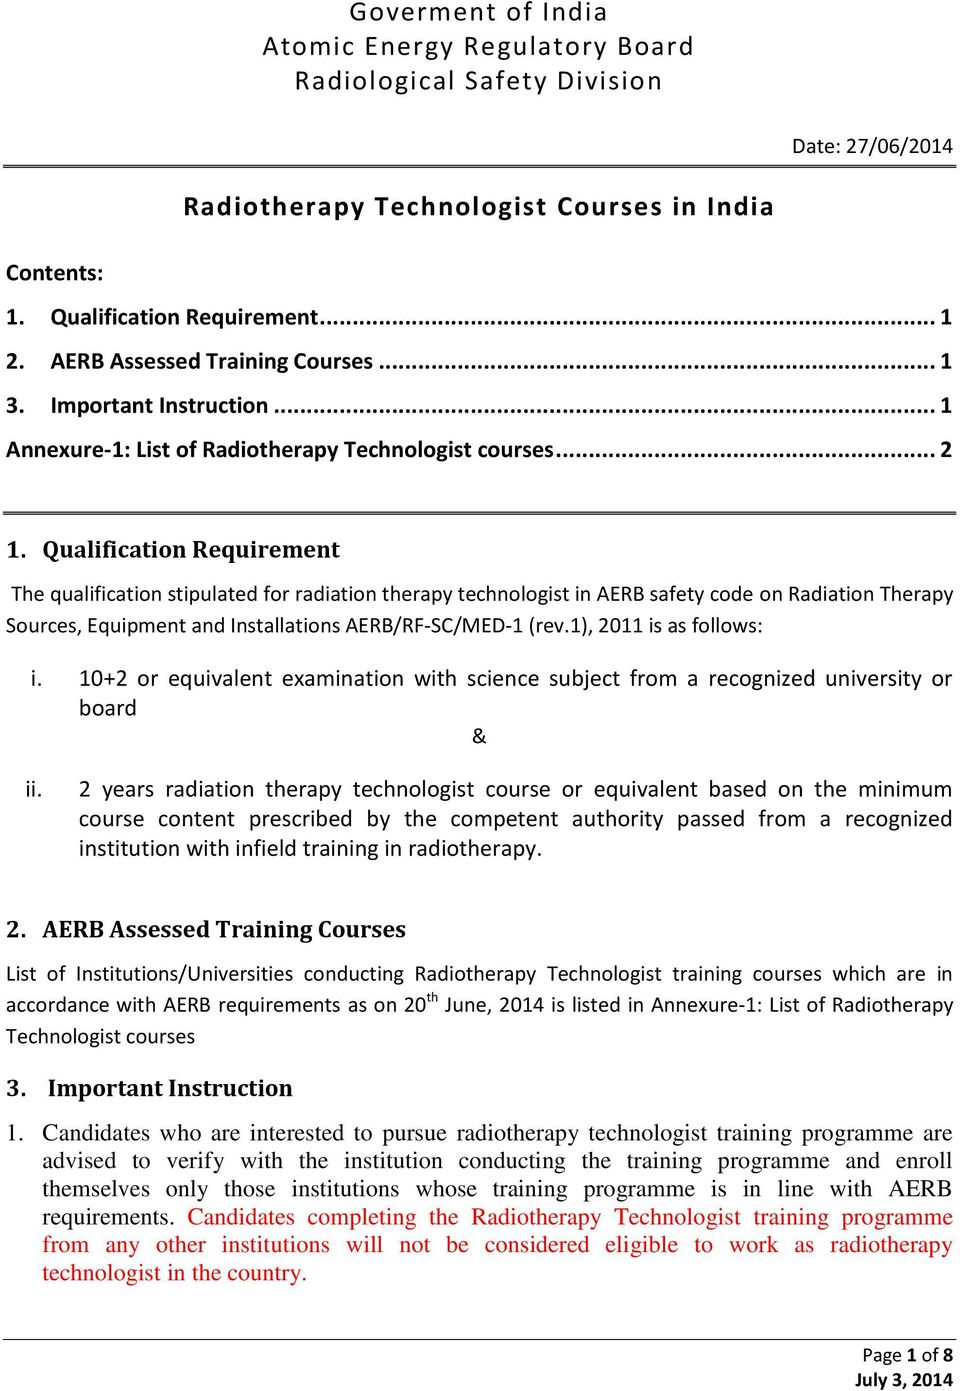 Qualification Requirement The qualification stipulated for radiation therapy technologist in AERB safety code on Radiation Therapy Sources, Equipment and Installations AERB/RF-SC/MED-1 (rev.